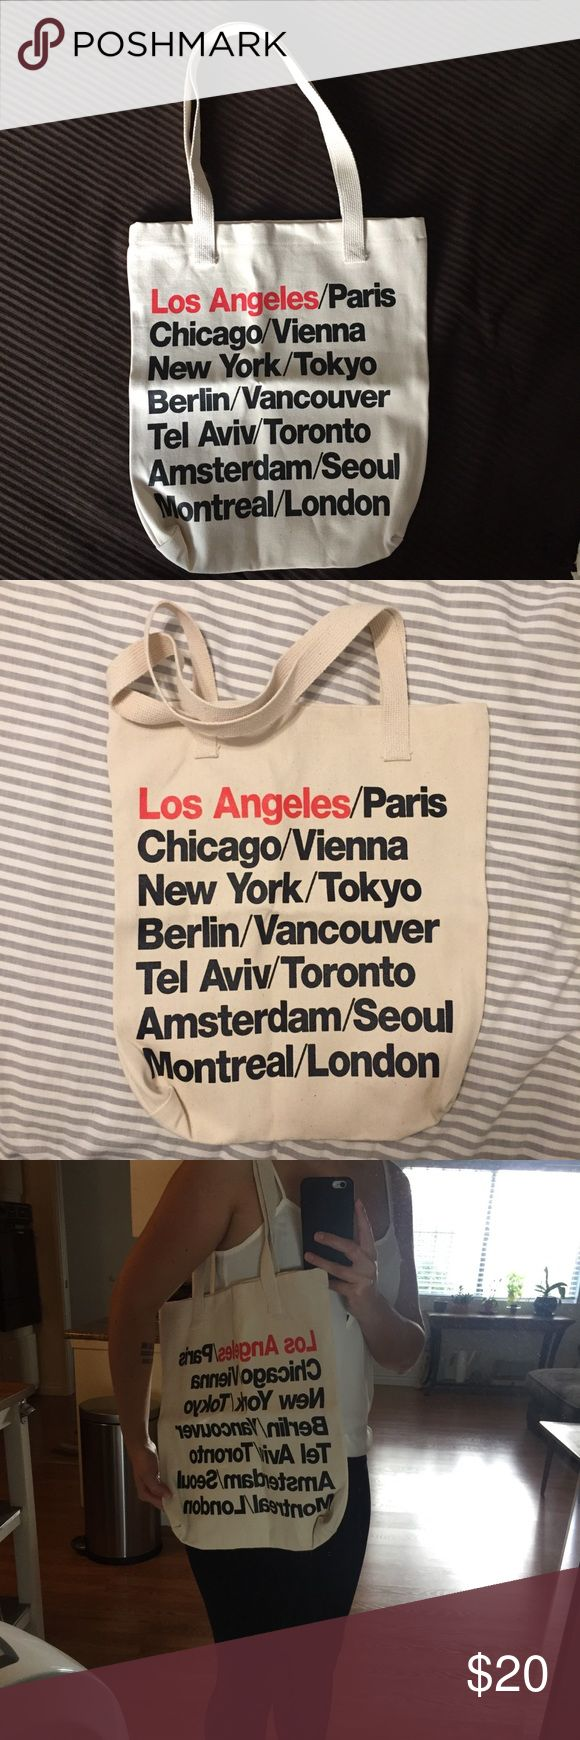 NWT American Apparel tote bag American apparel printed bull denim woven cotton tote in beige/black/red Los Angeles cities. Made in USA American Apparel Bags Totes